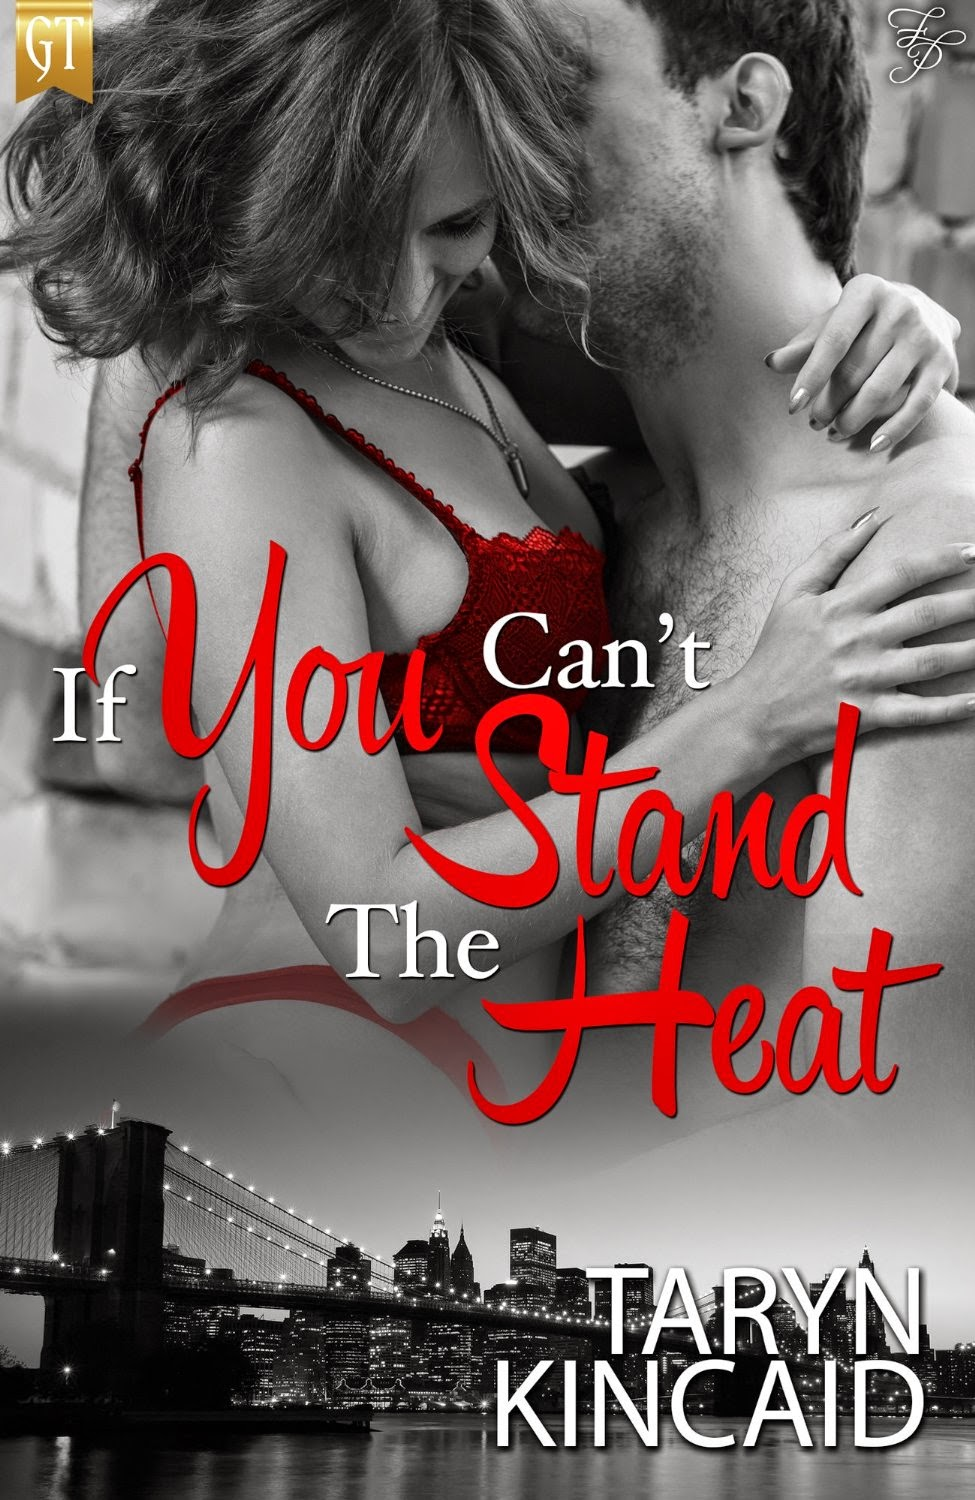 If You Can't Stand the Heat by Taryn Kincaid